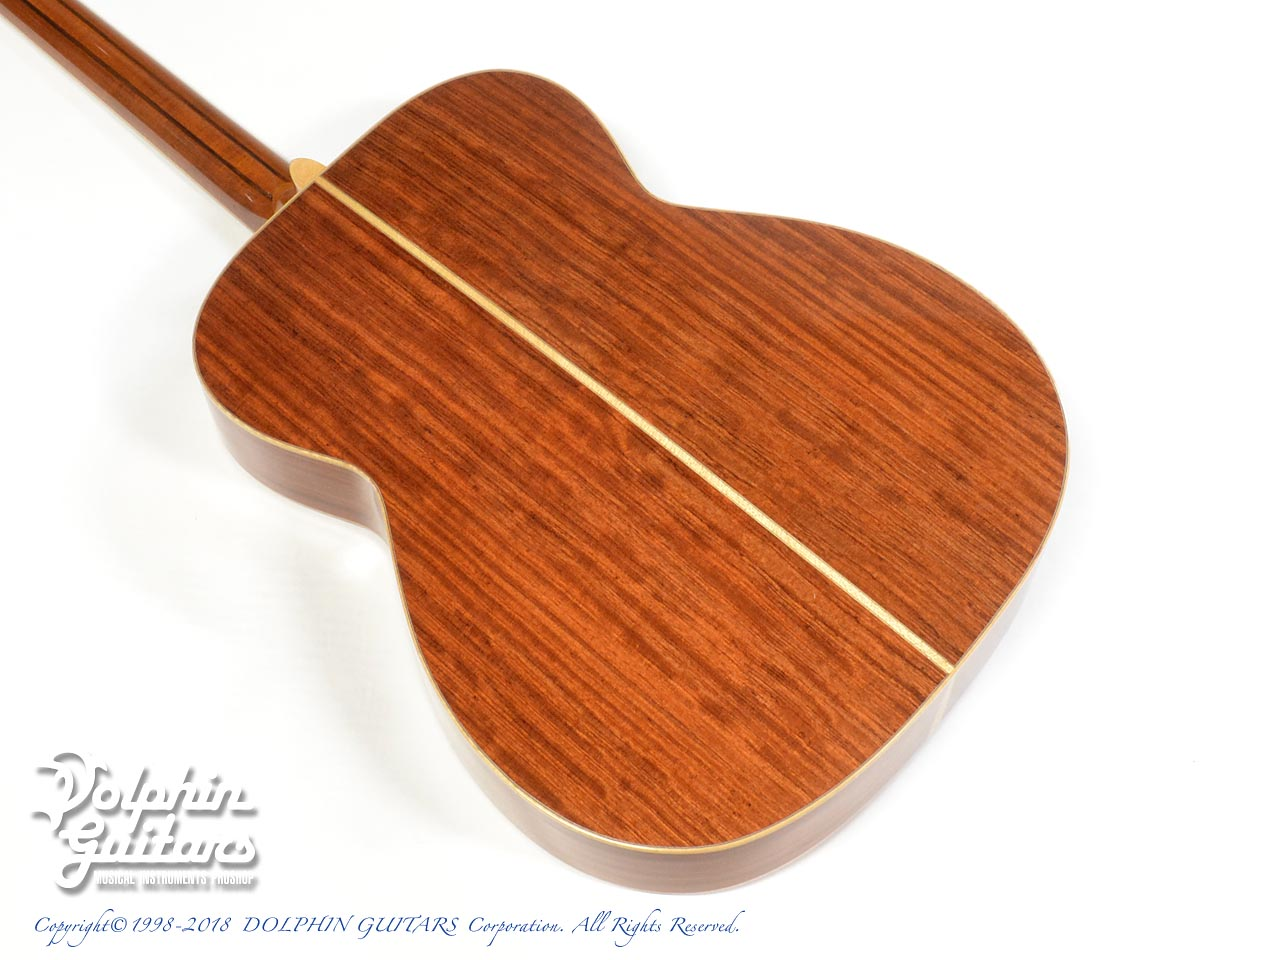 IWANEKO GUITARS: Type-MD (Dimple Cutaway) (3)